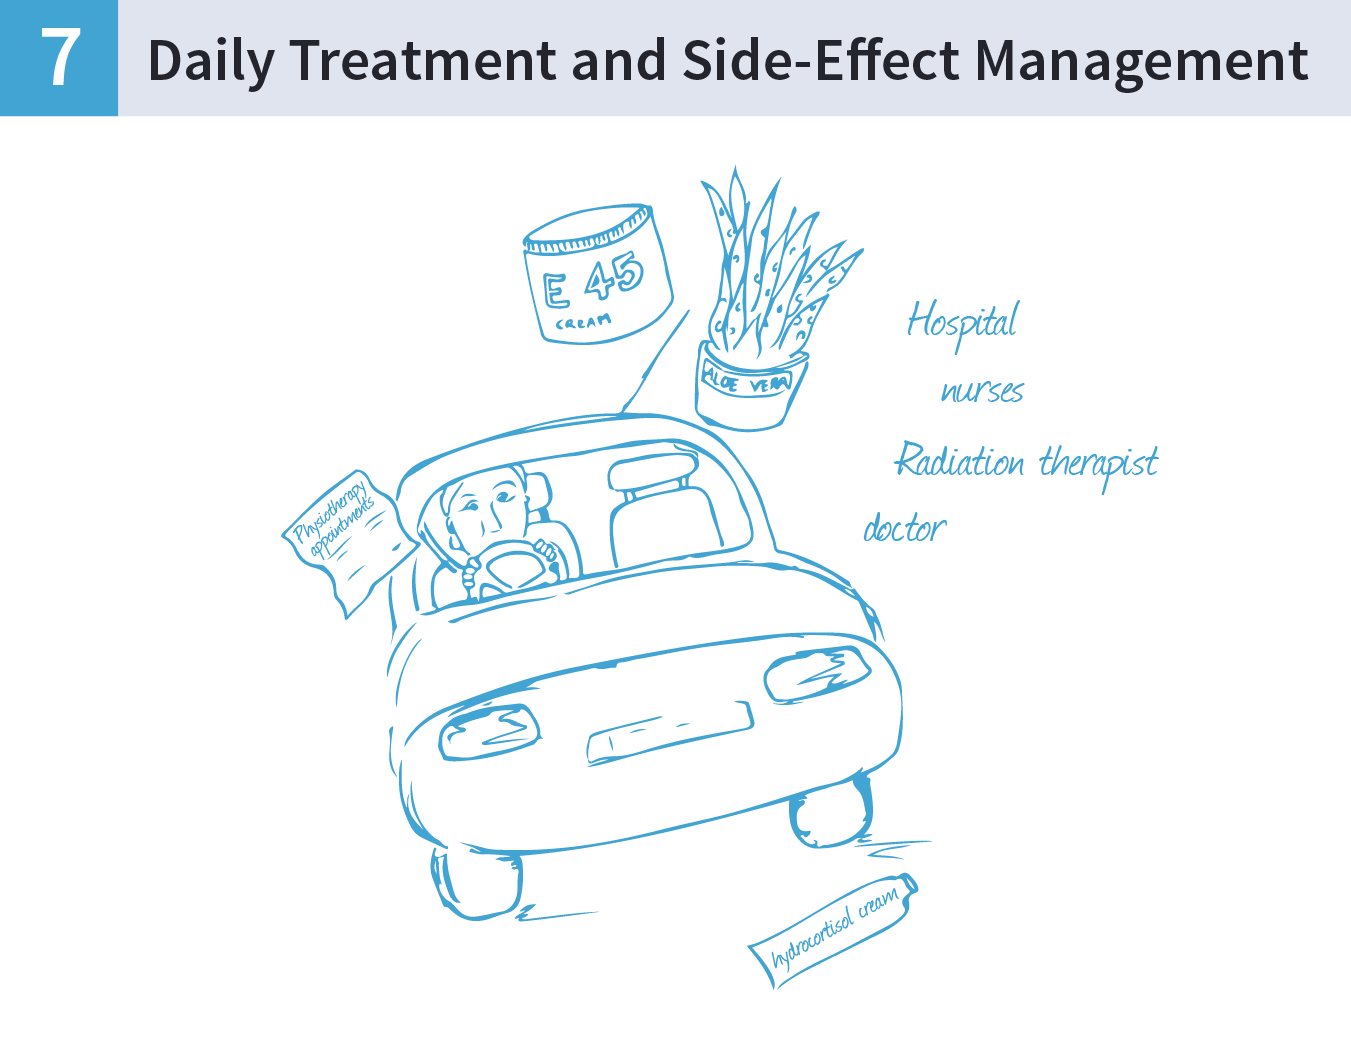 An illustration of a woman driving a car with images of E45 cream, Aloe Vera, prescriptions and cream surrounding it.